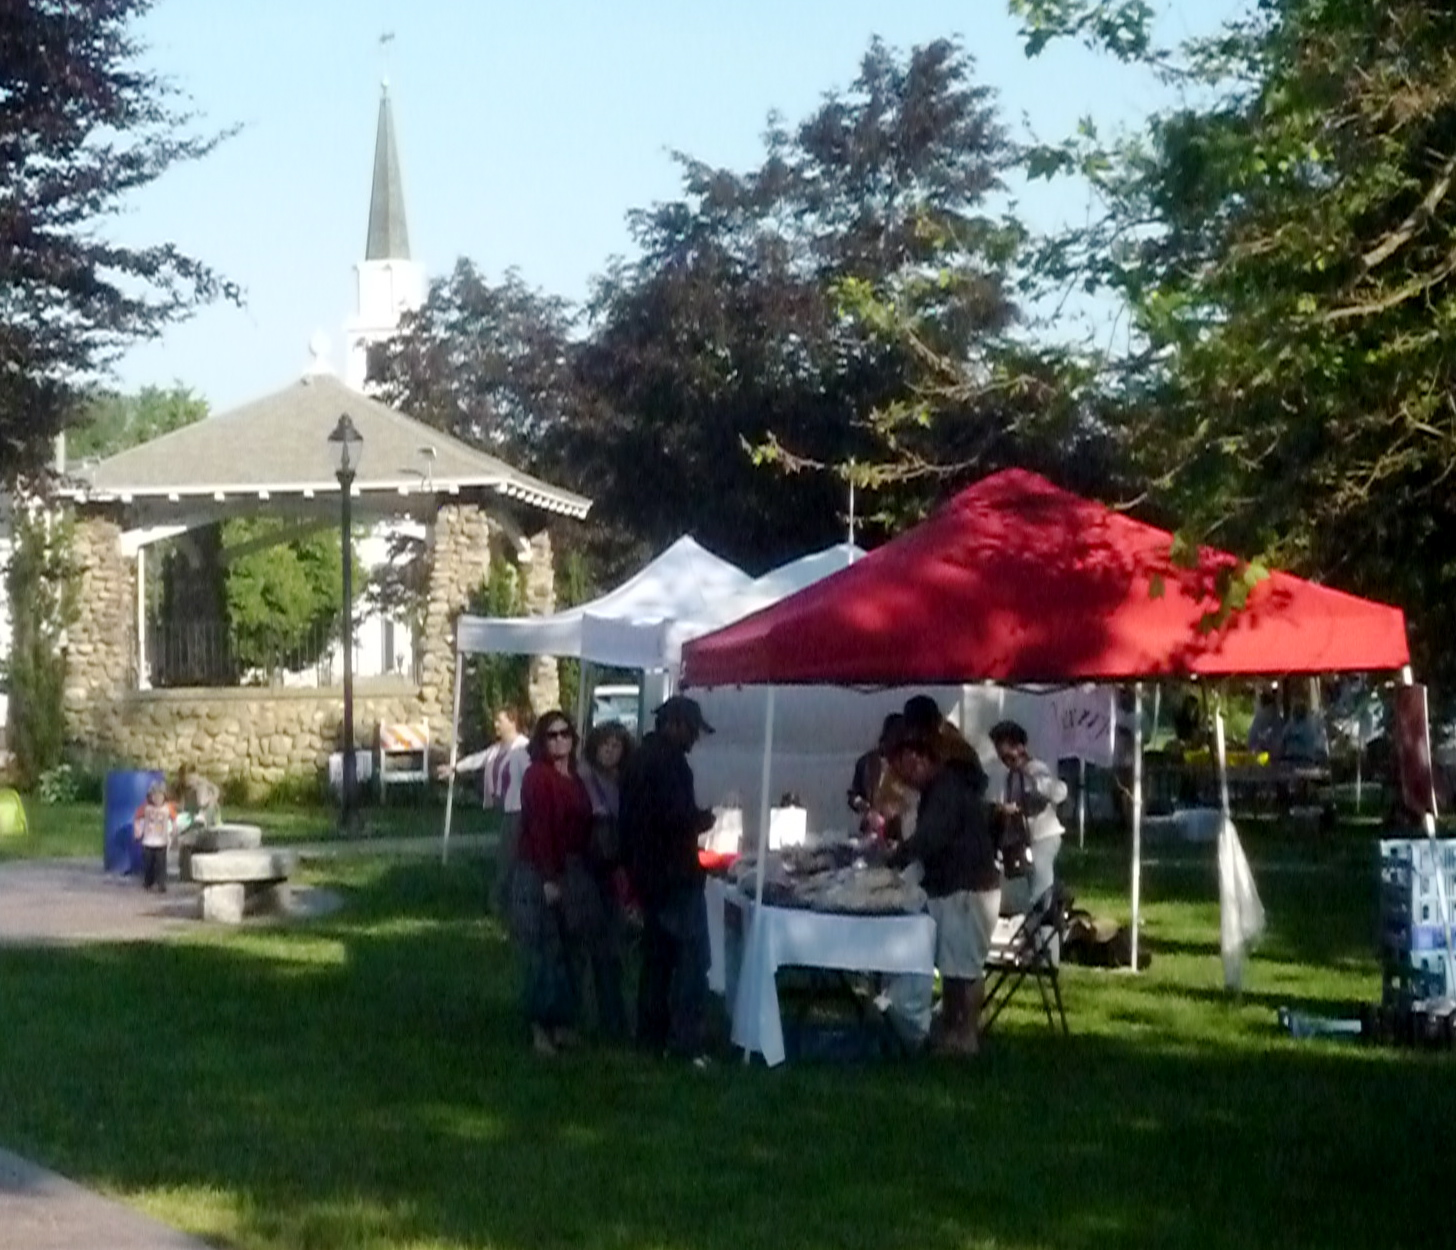 Walpole Farmers Market, Walpole, Mass. (photo by Eric H.)